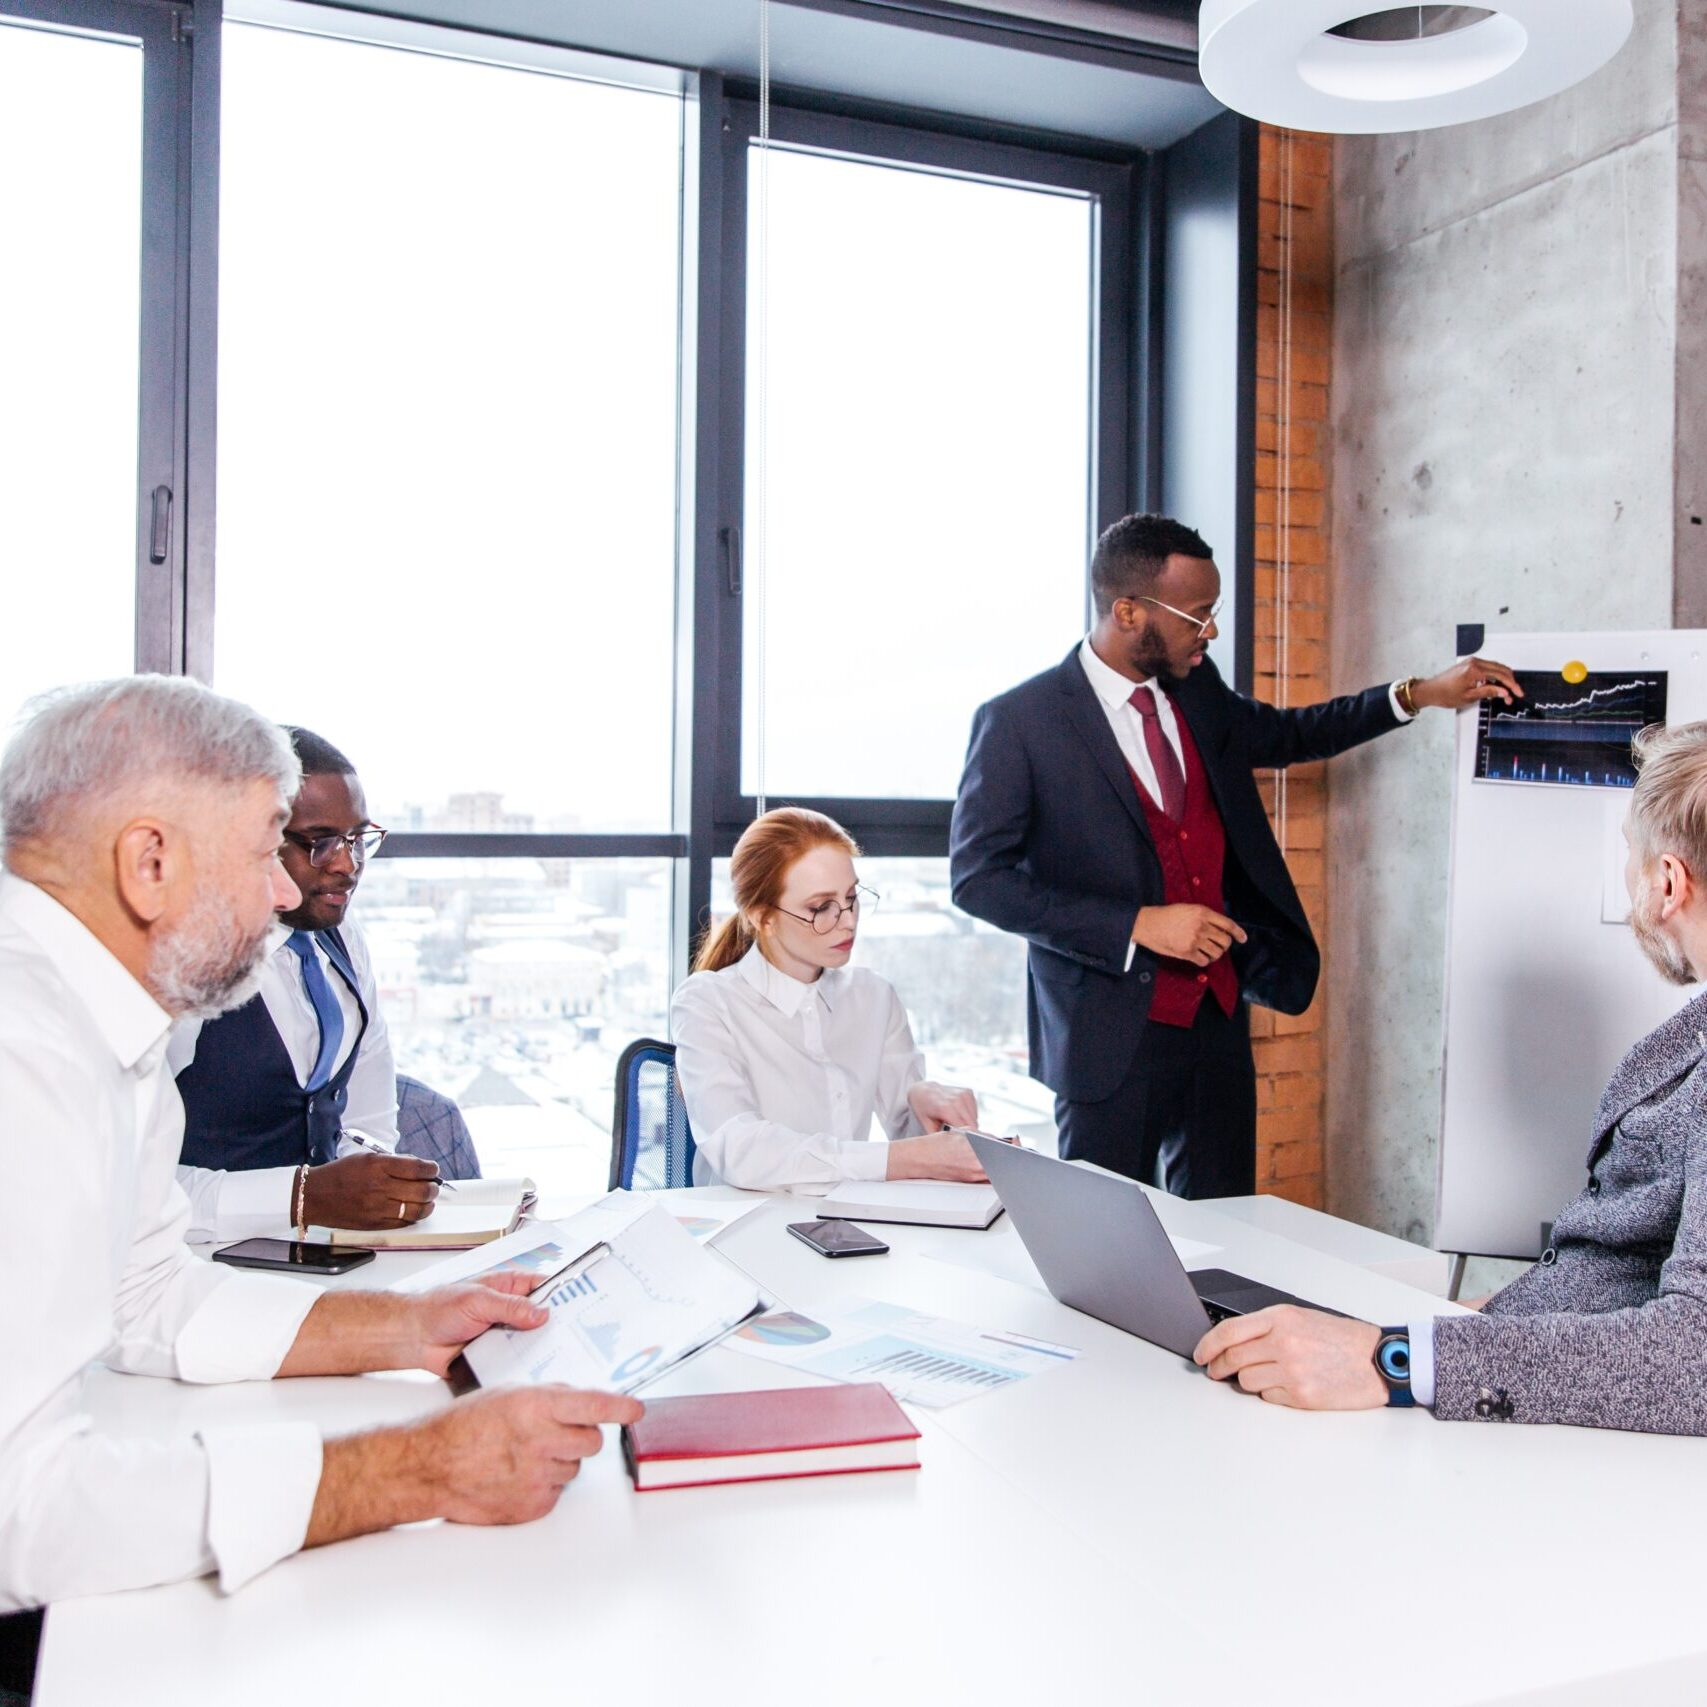 Multi-racial creative people in a modern office. African businessman presents new project standing at easel with economic development schedule